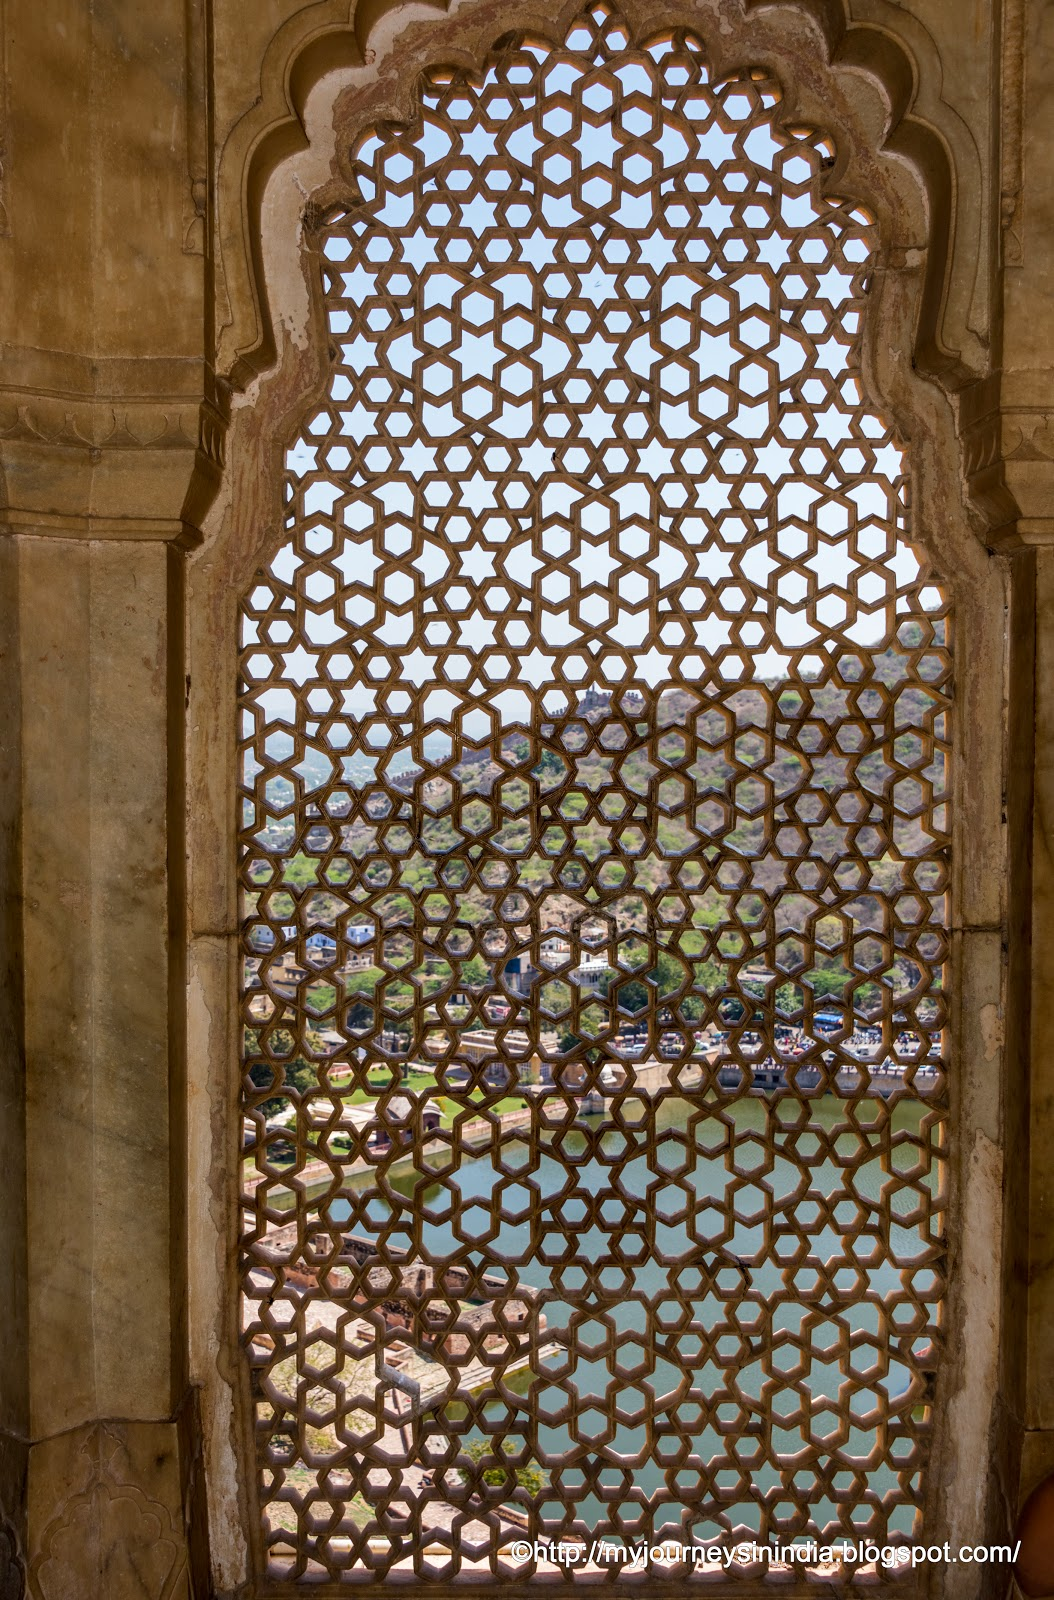 Latticed Windows in Amer Fort Jaipur